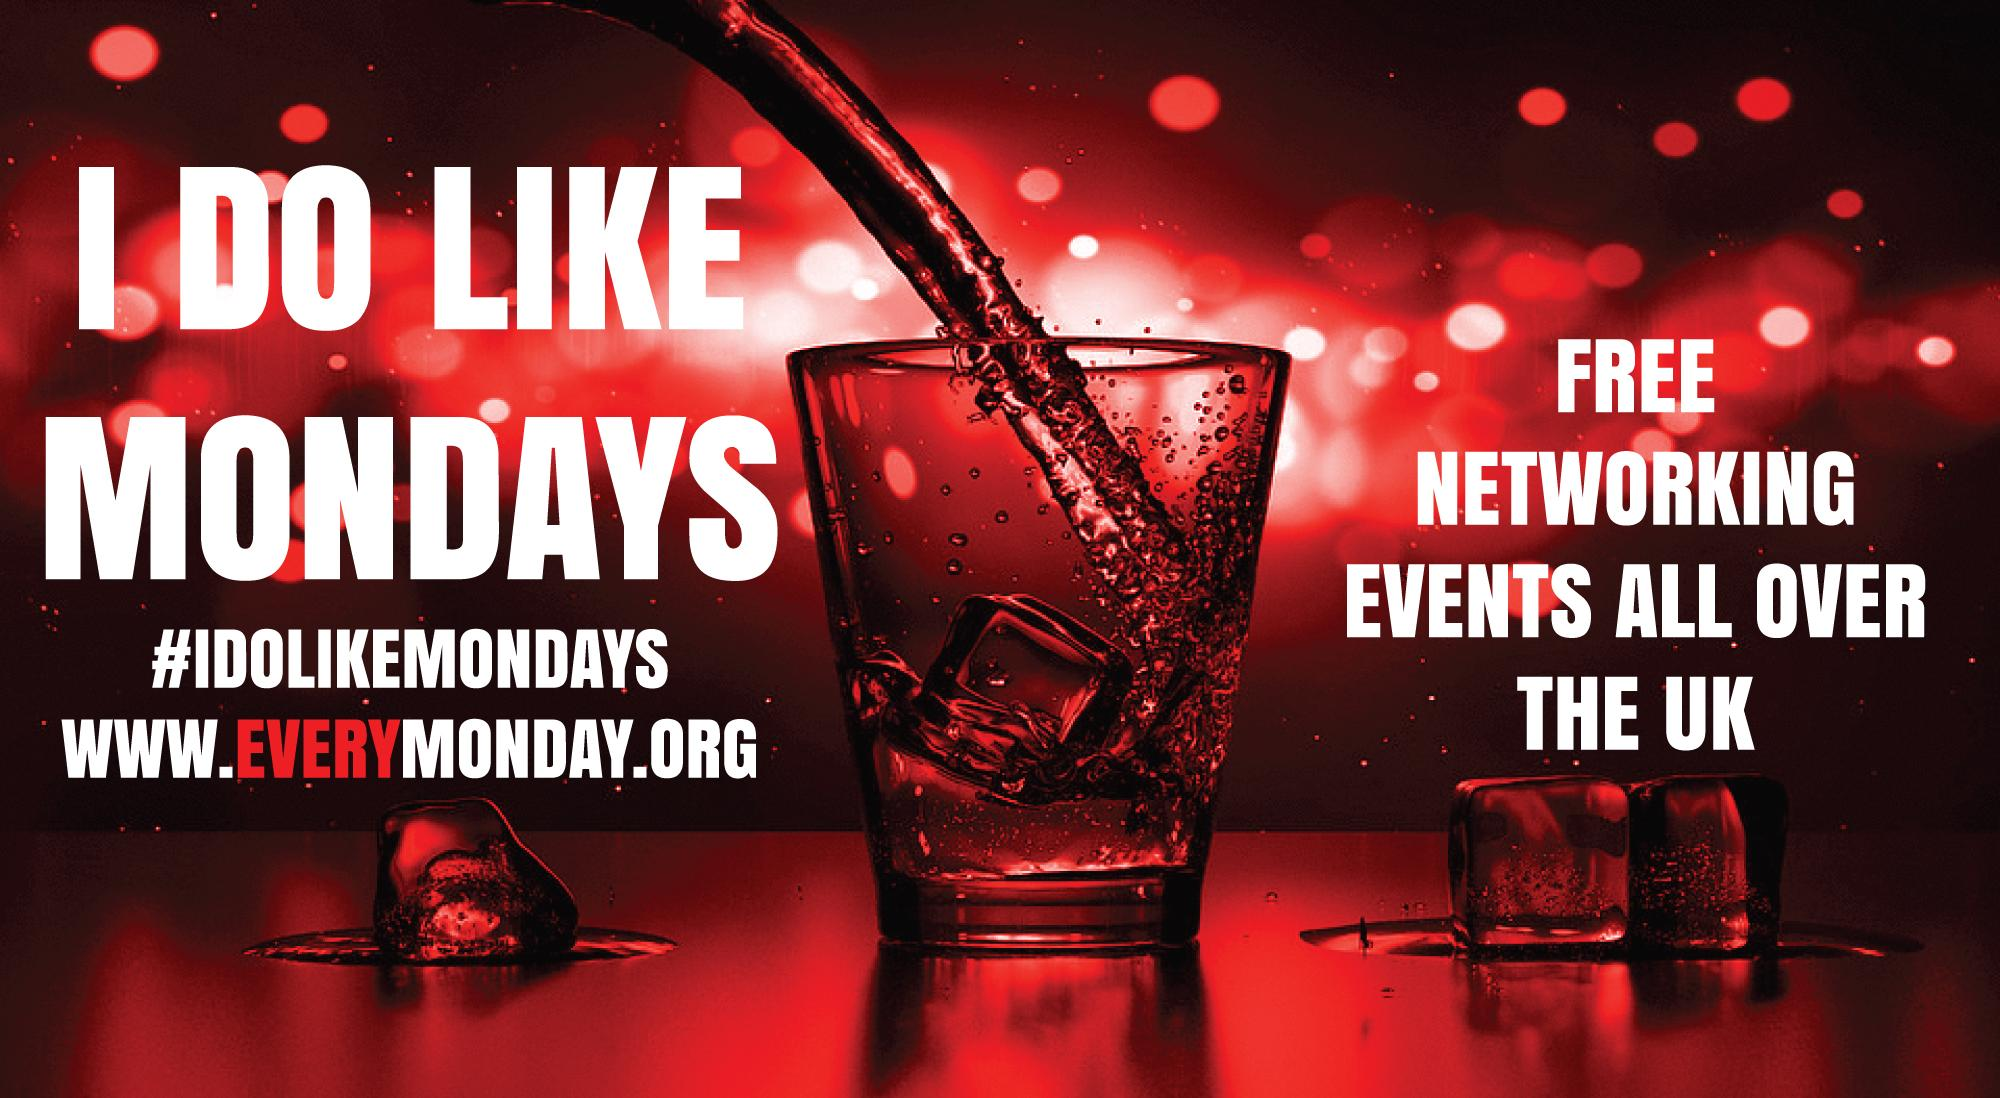 I DO LIKE MONDAYS! Free networking event in Leeds